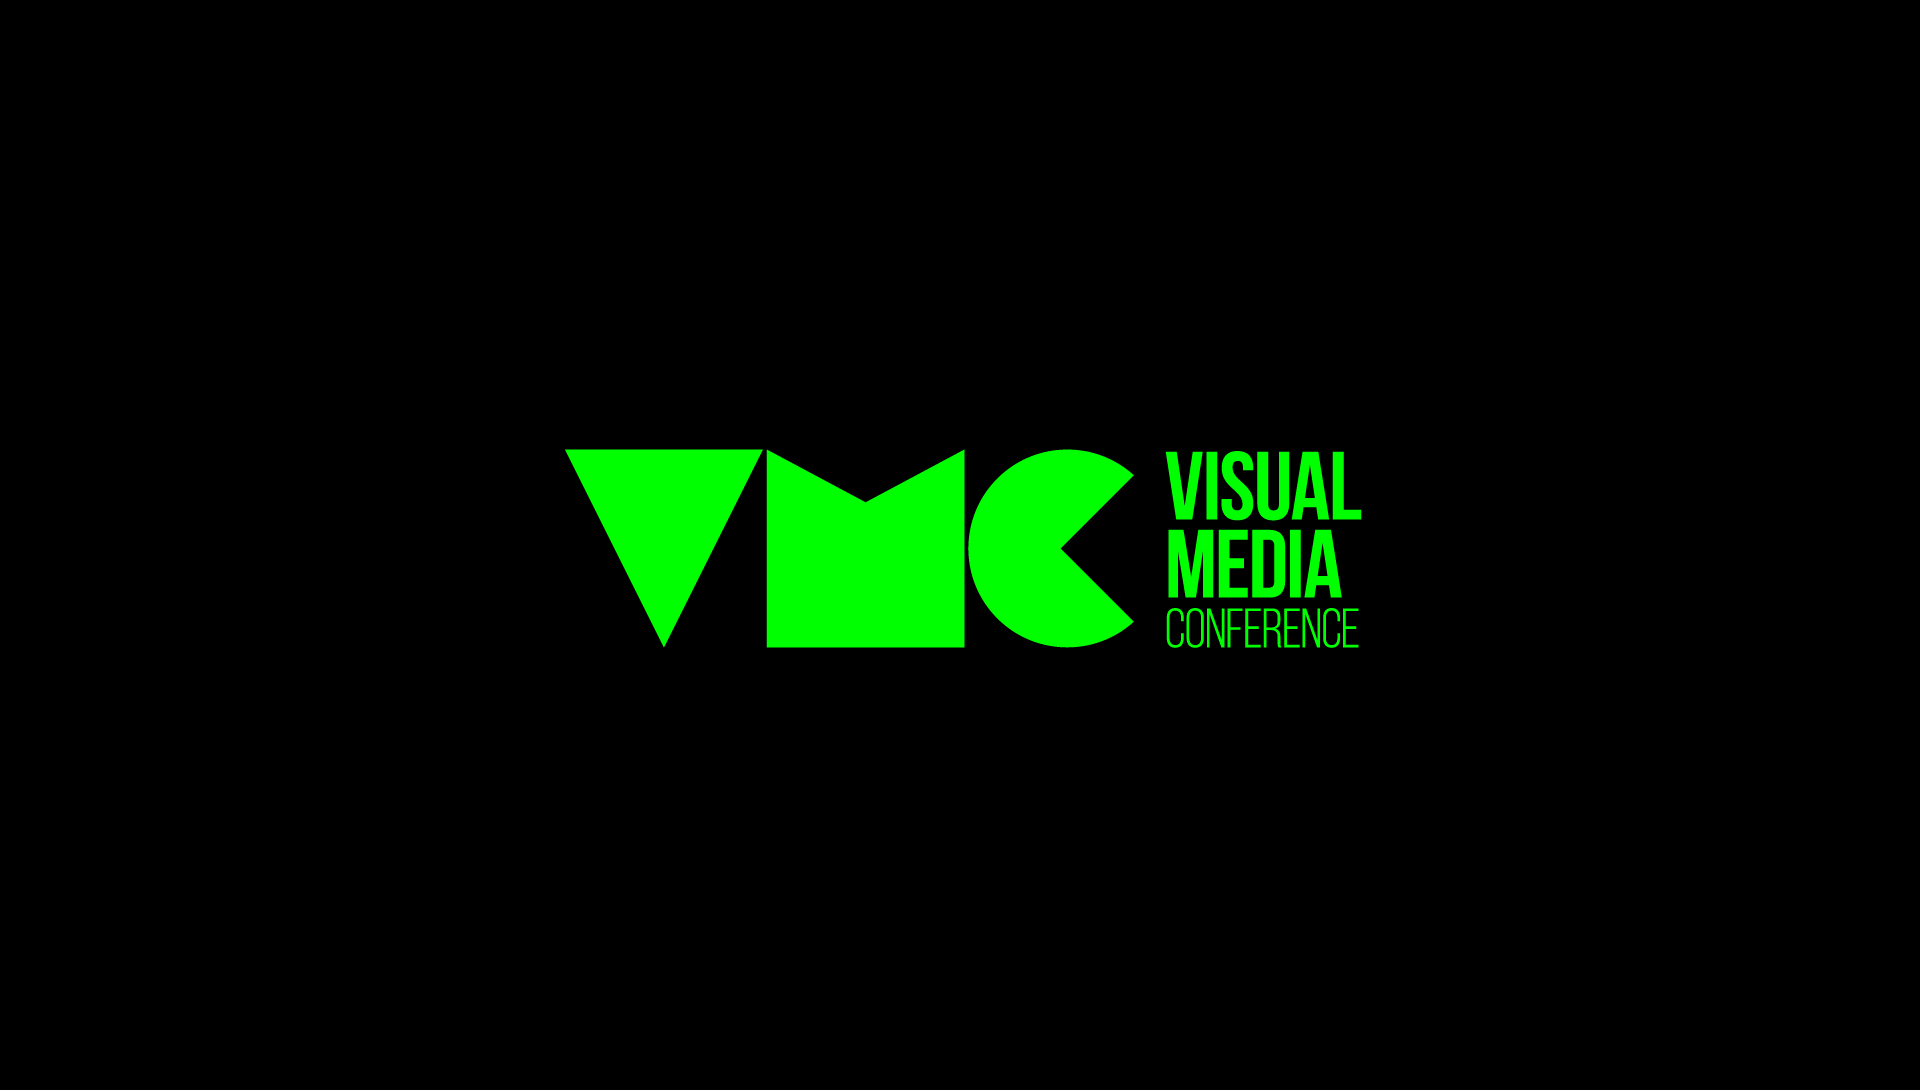 Visual Media Conference 2020 - Virtual Teaser